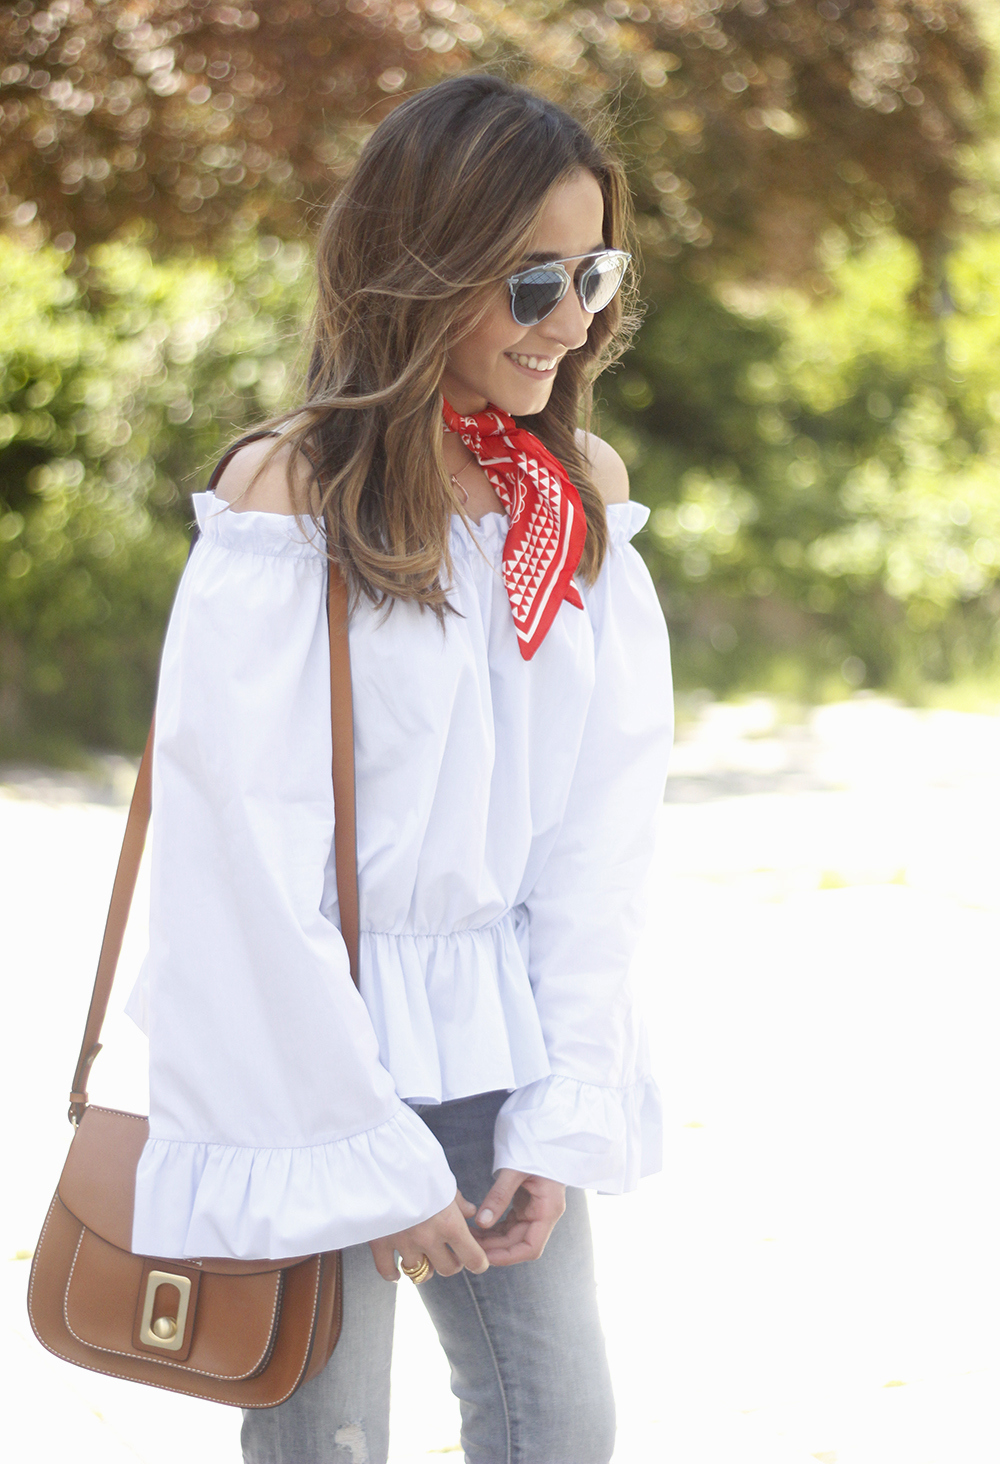 off the shoulders top with bell sleeves red bandana nude heels dior sunglasses spring outfit17